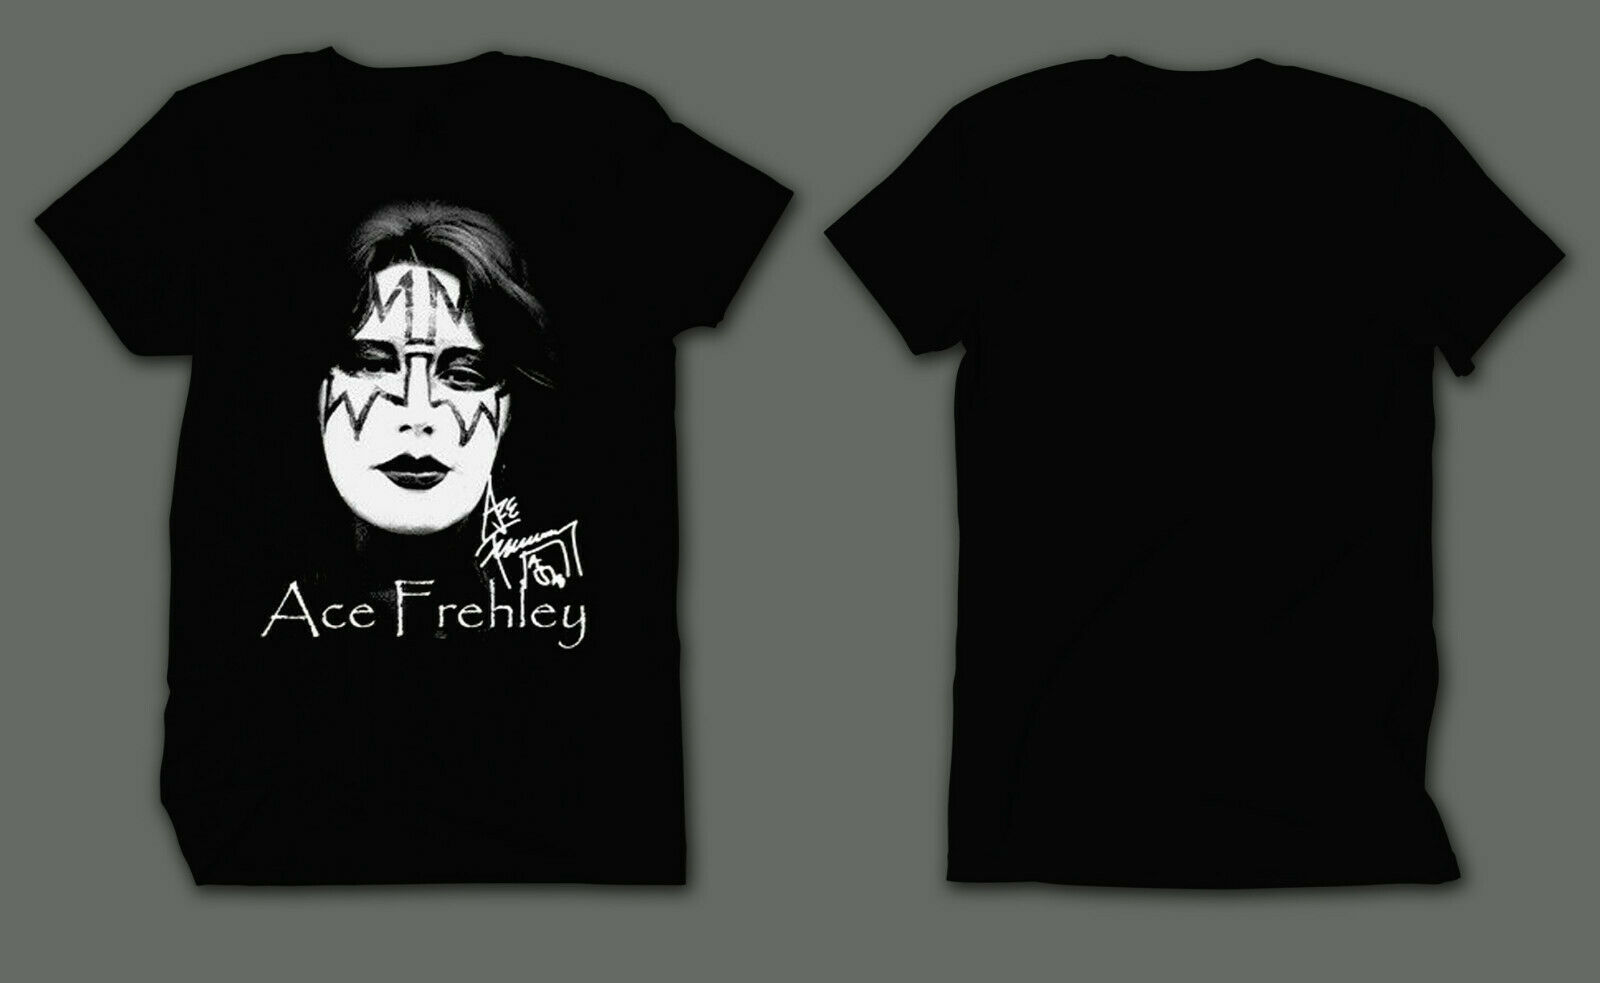 Ace Frehley Kiss Rock Band Guitarist Tribute Black T-Shirt TShirt Tee Size S-4XL image